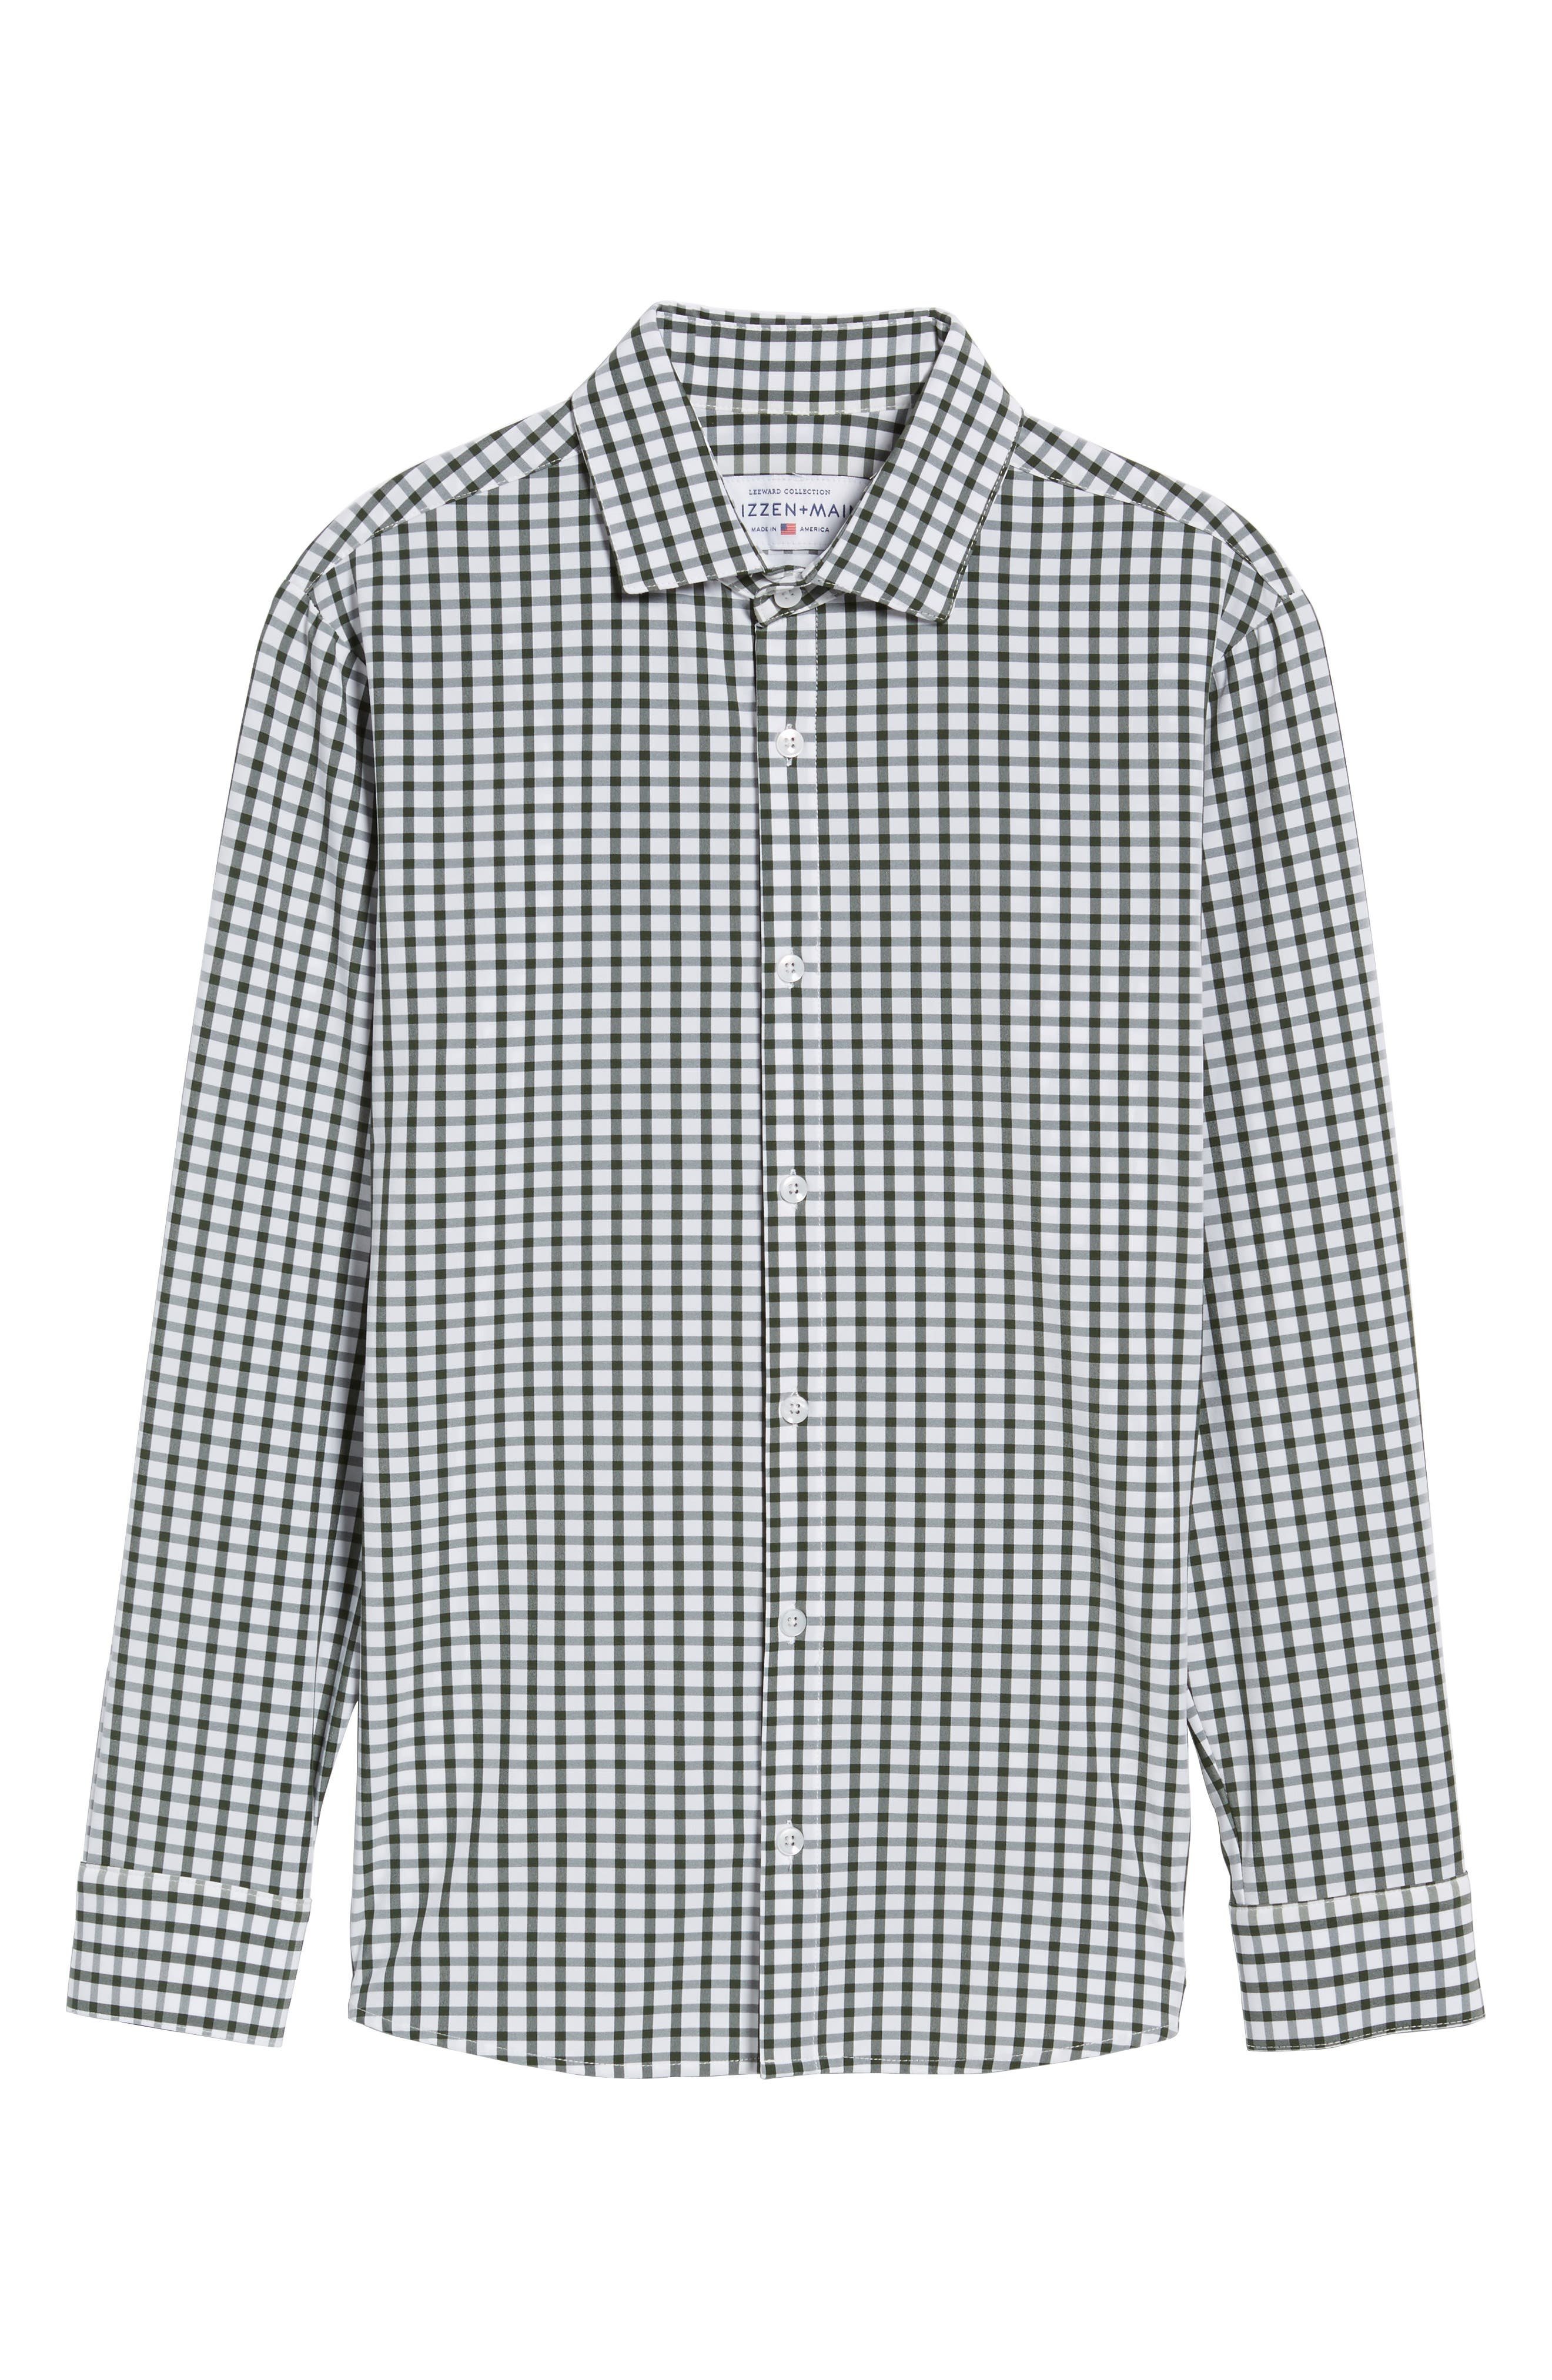 Turner Green Gingham Sport Shirt,                             Alternate thumbnail 6, color,                             Green